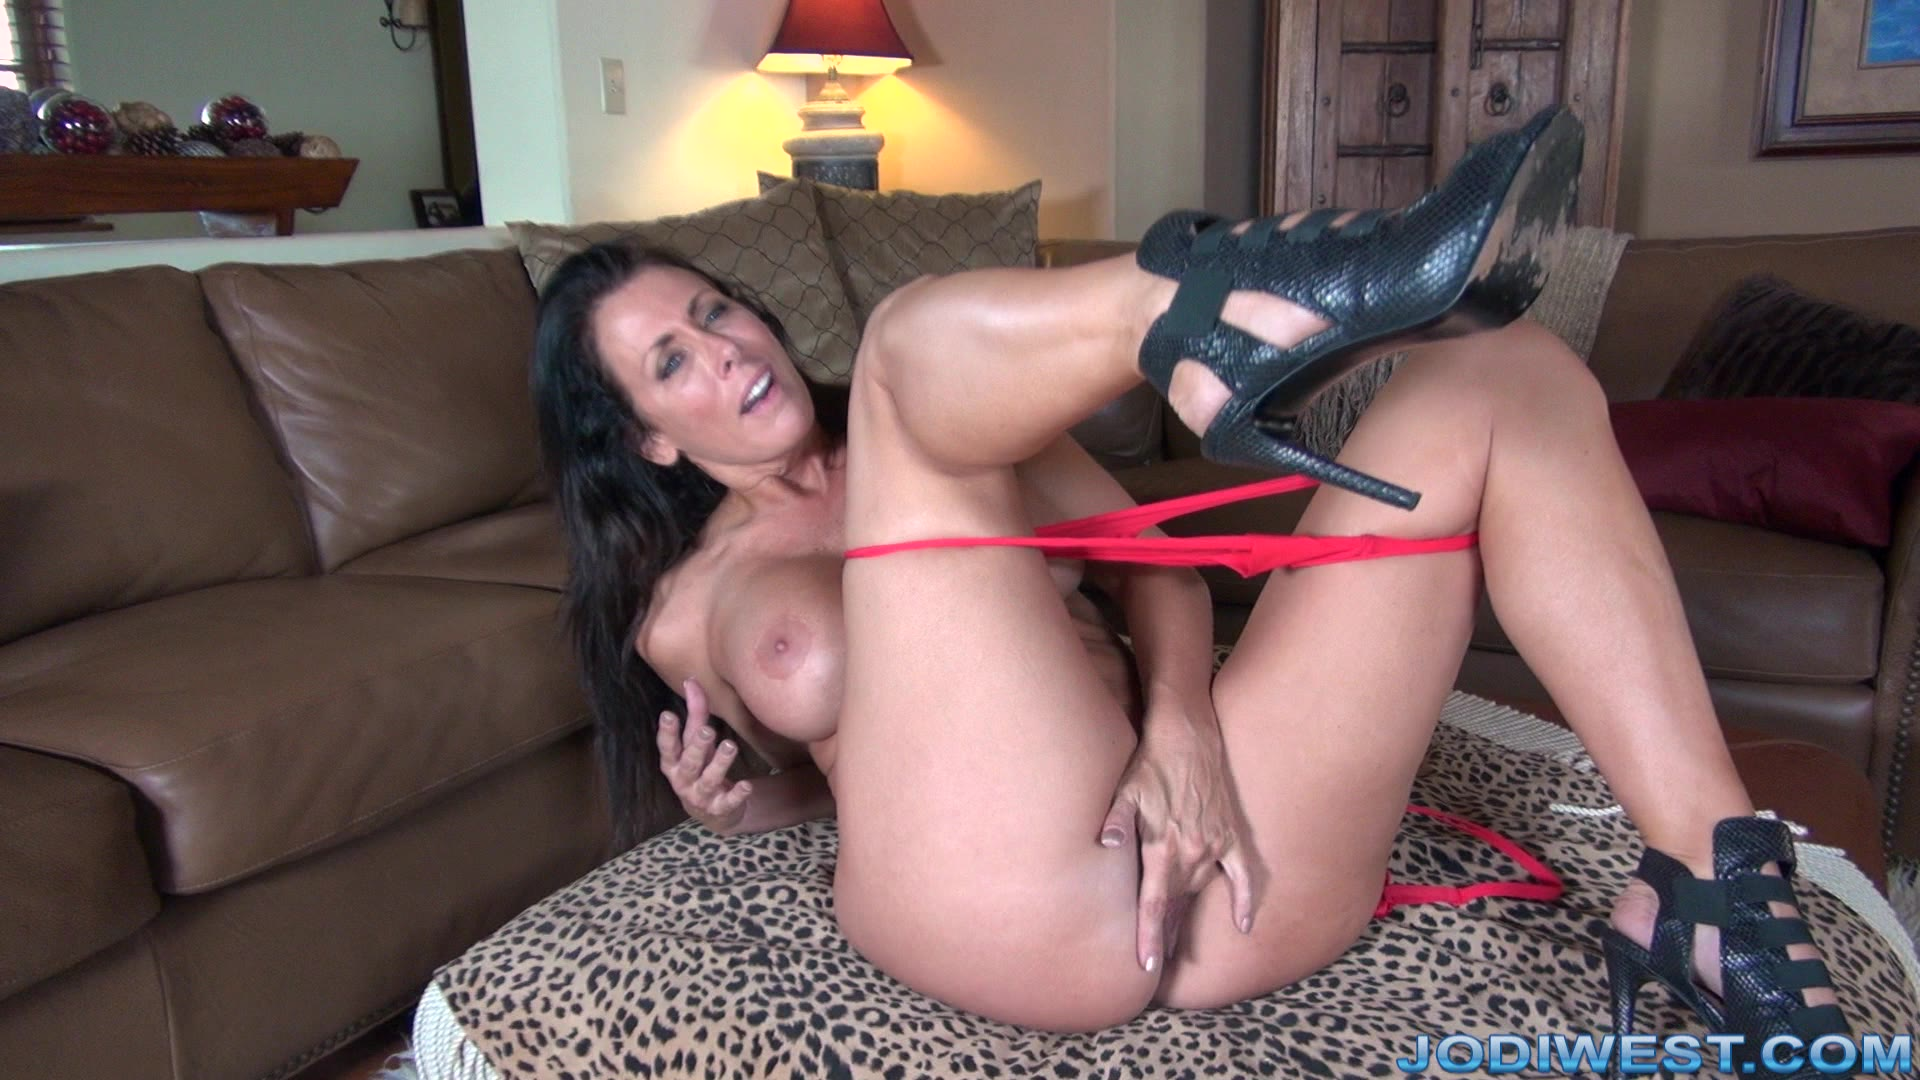 kendra playboy naked pussy